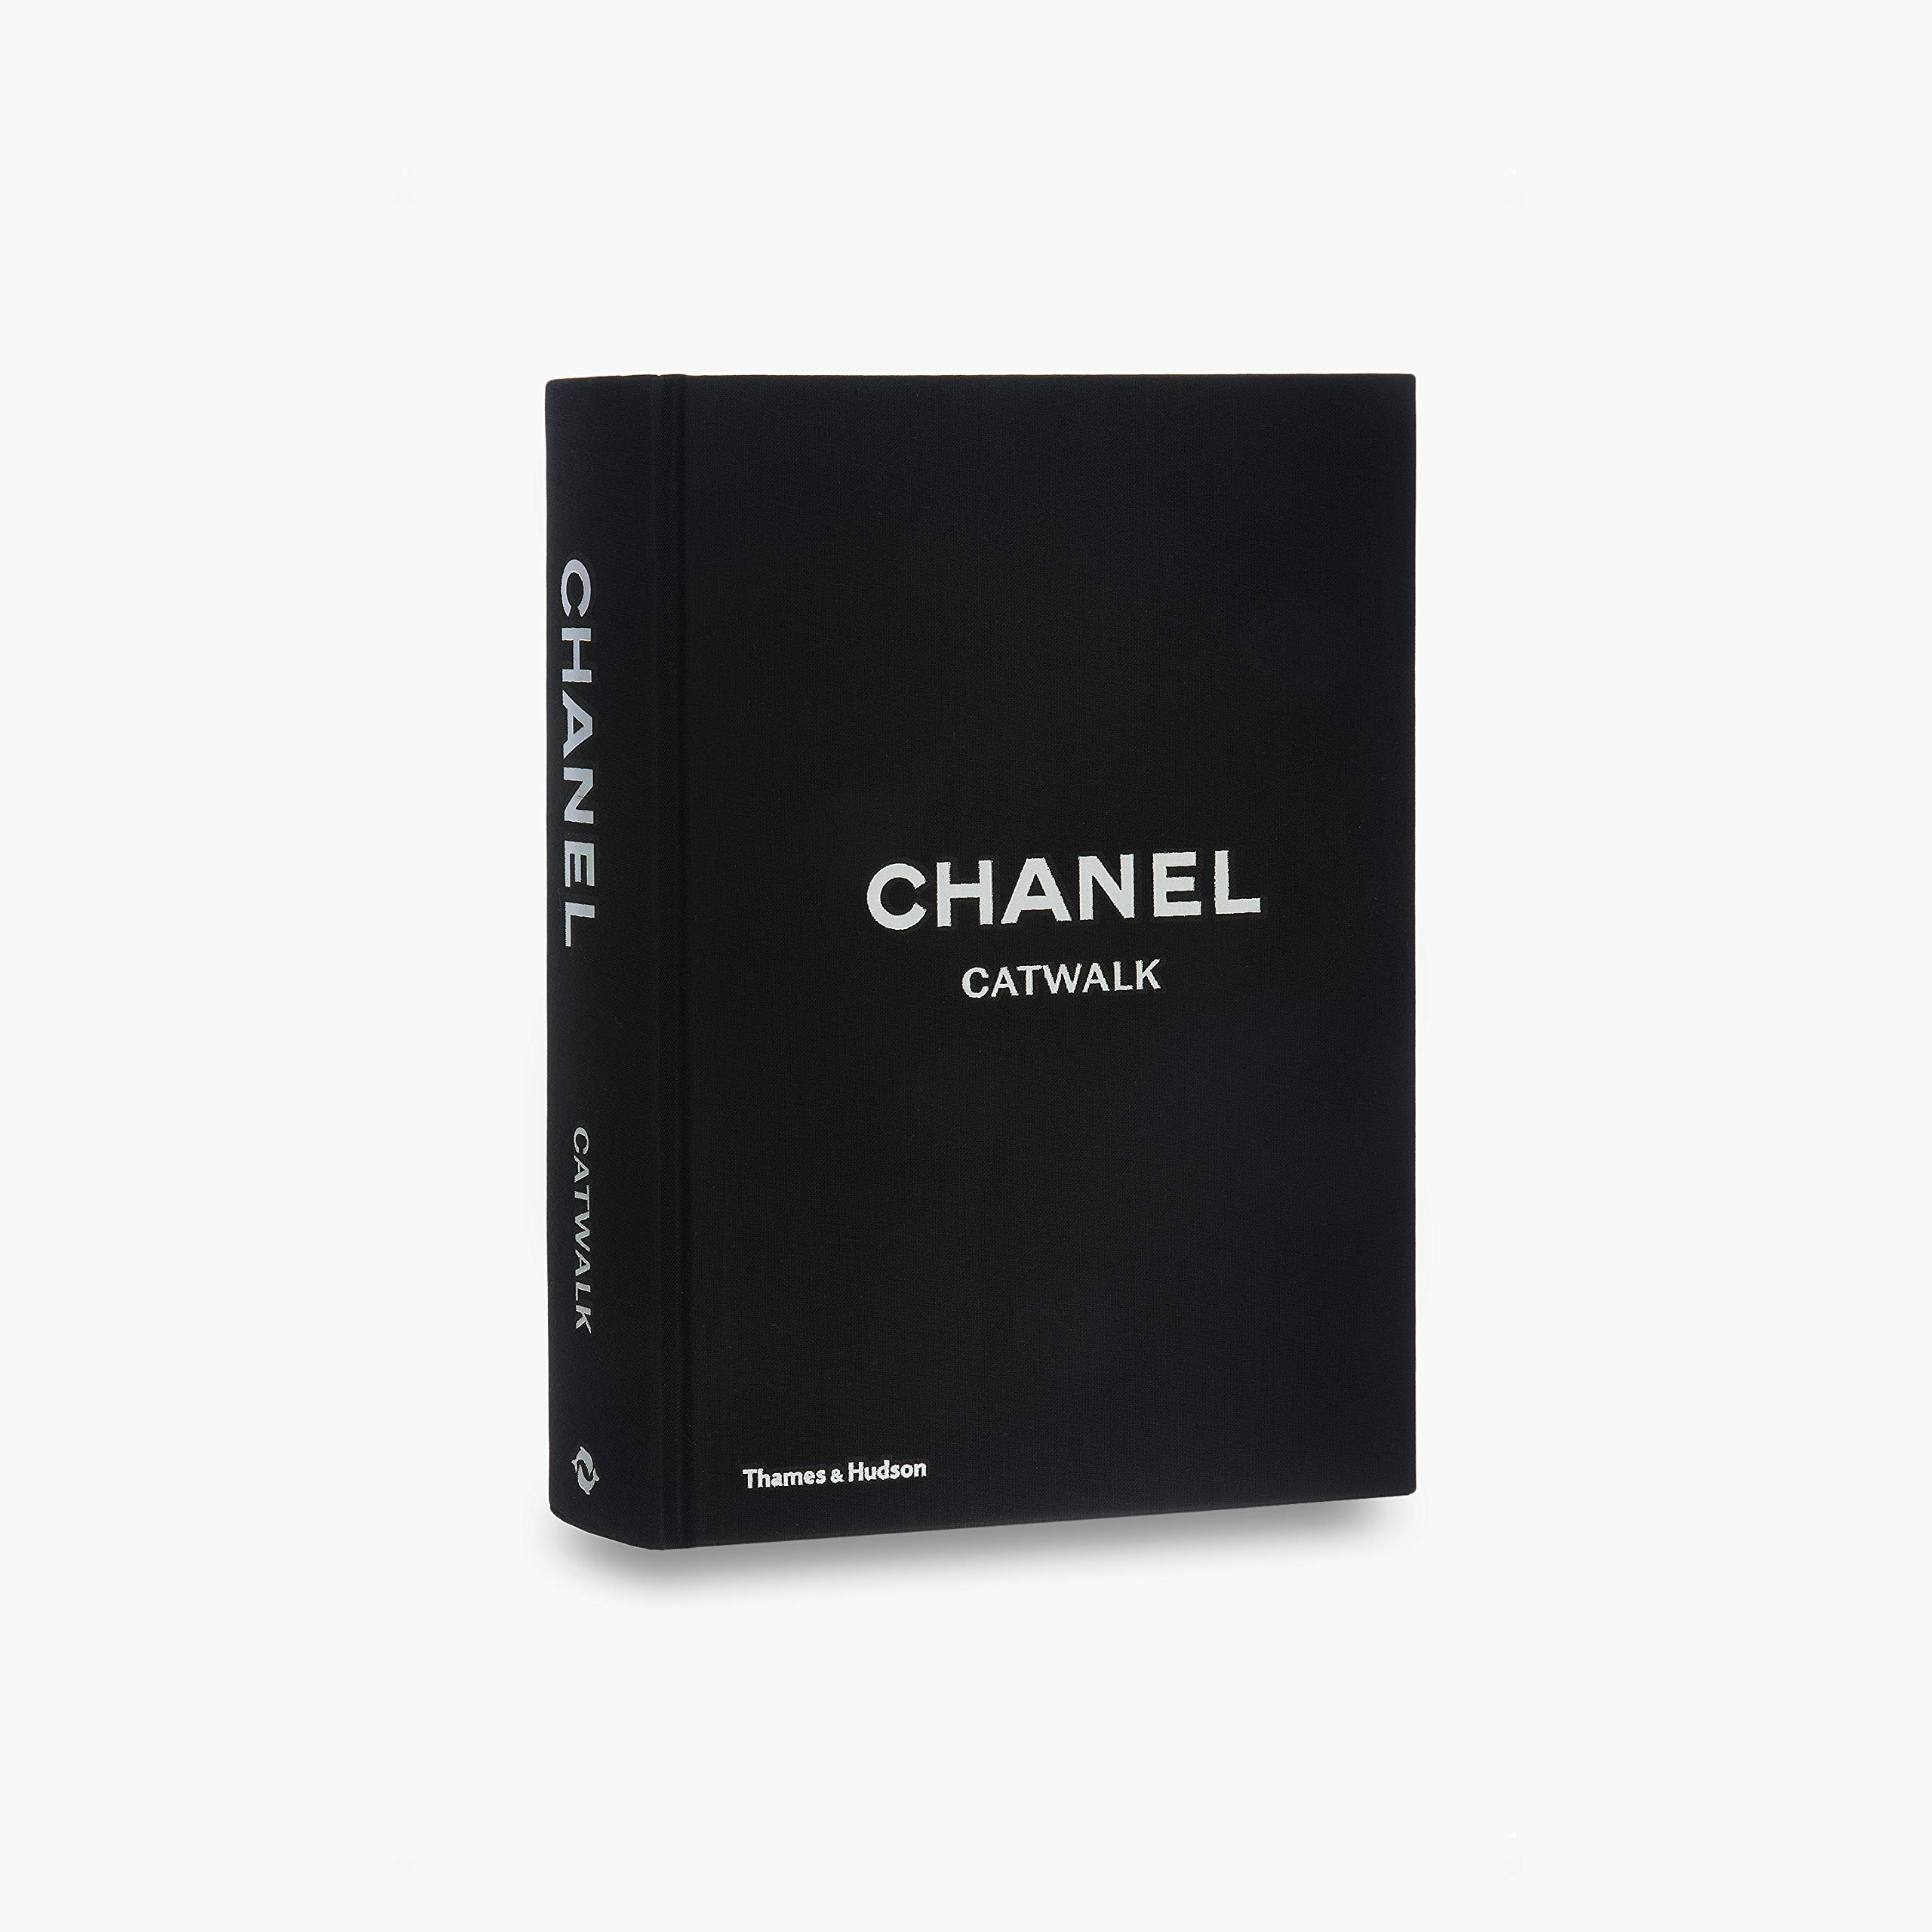 Buy Chanel Catwalk The Complete Karl Lagerfeld Collections